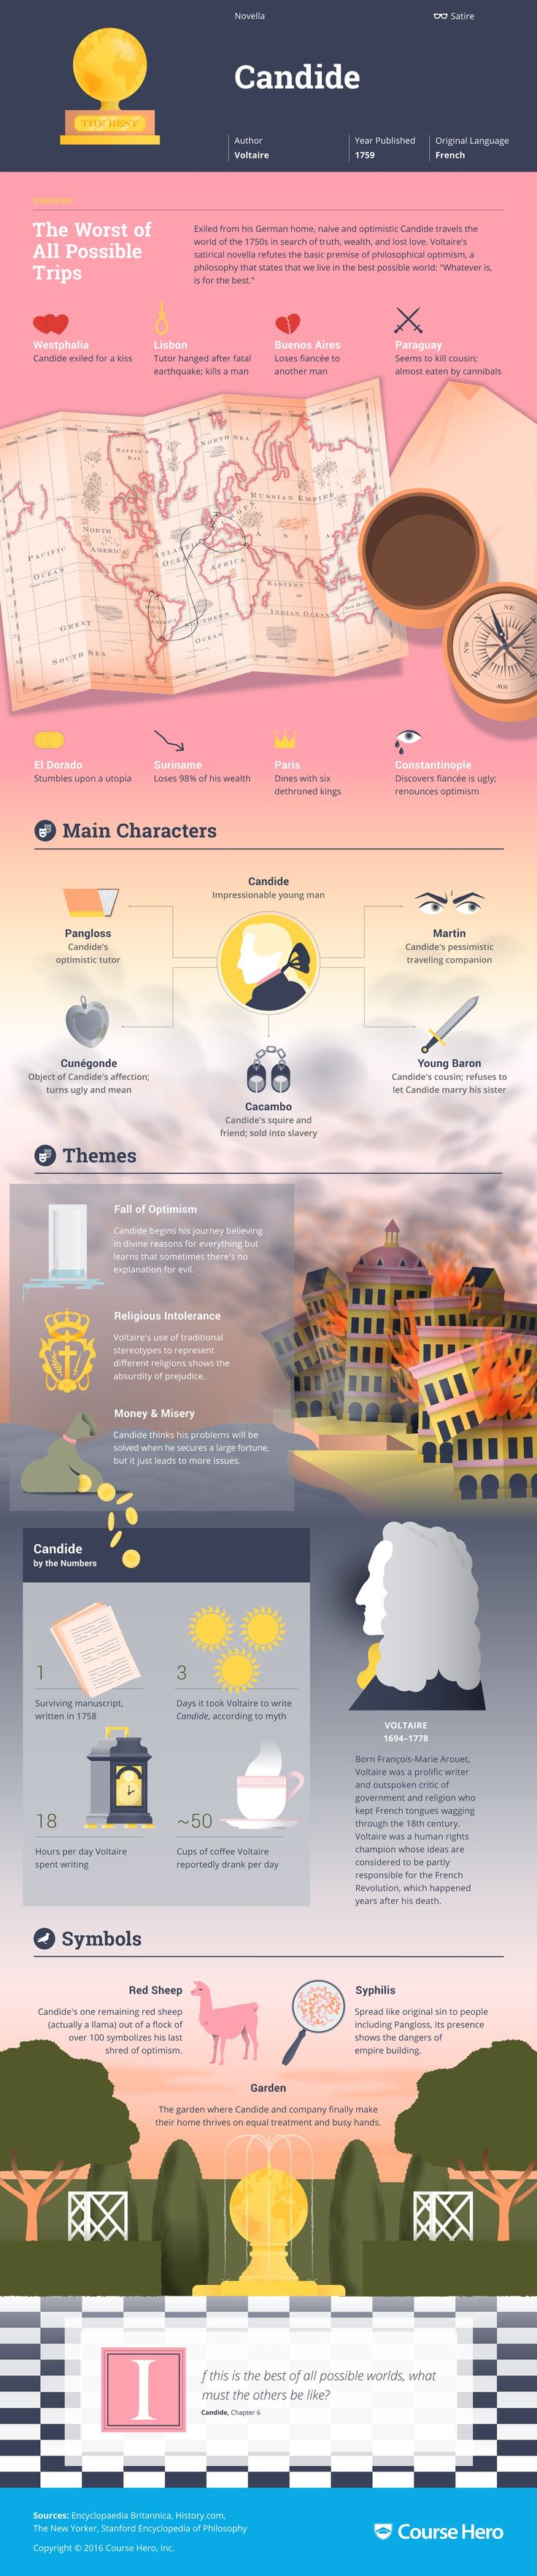 Candide Infographic | Course Hero